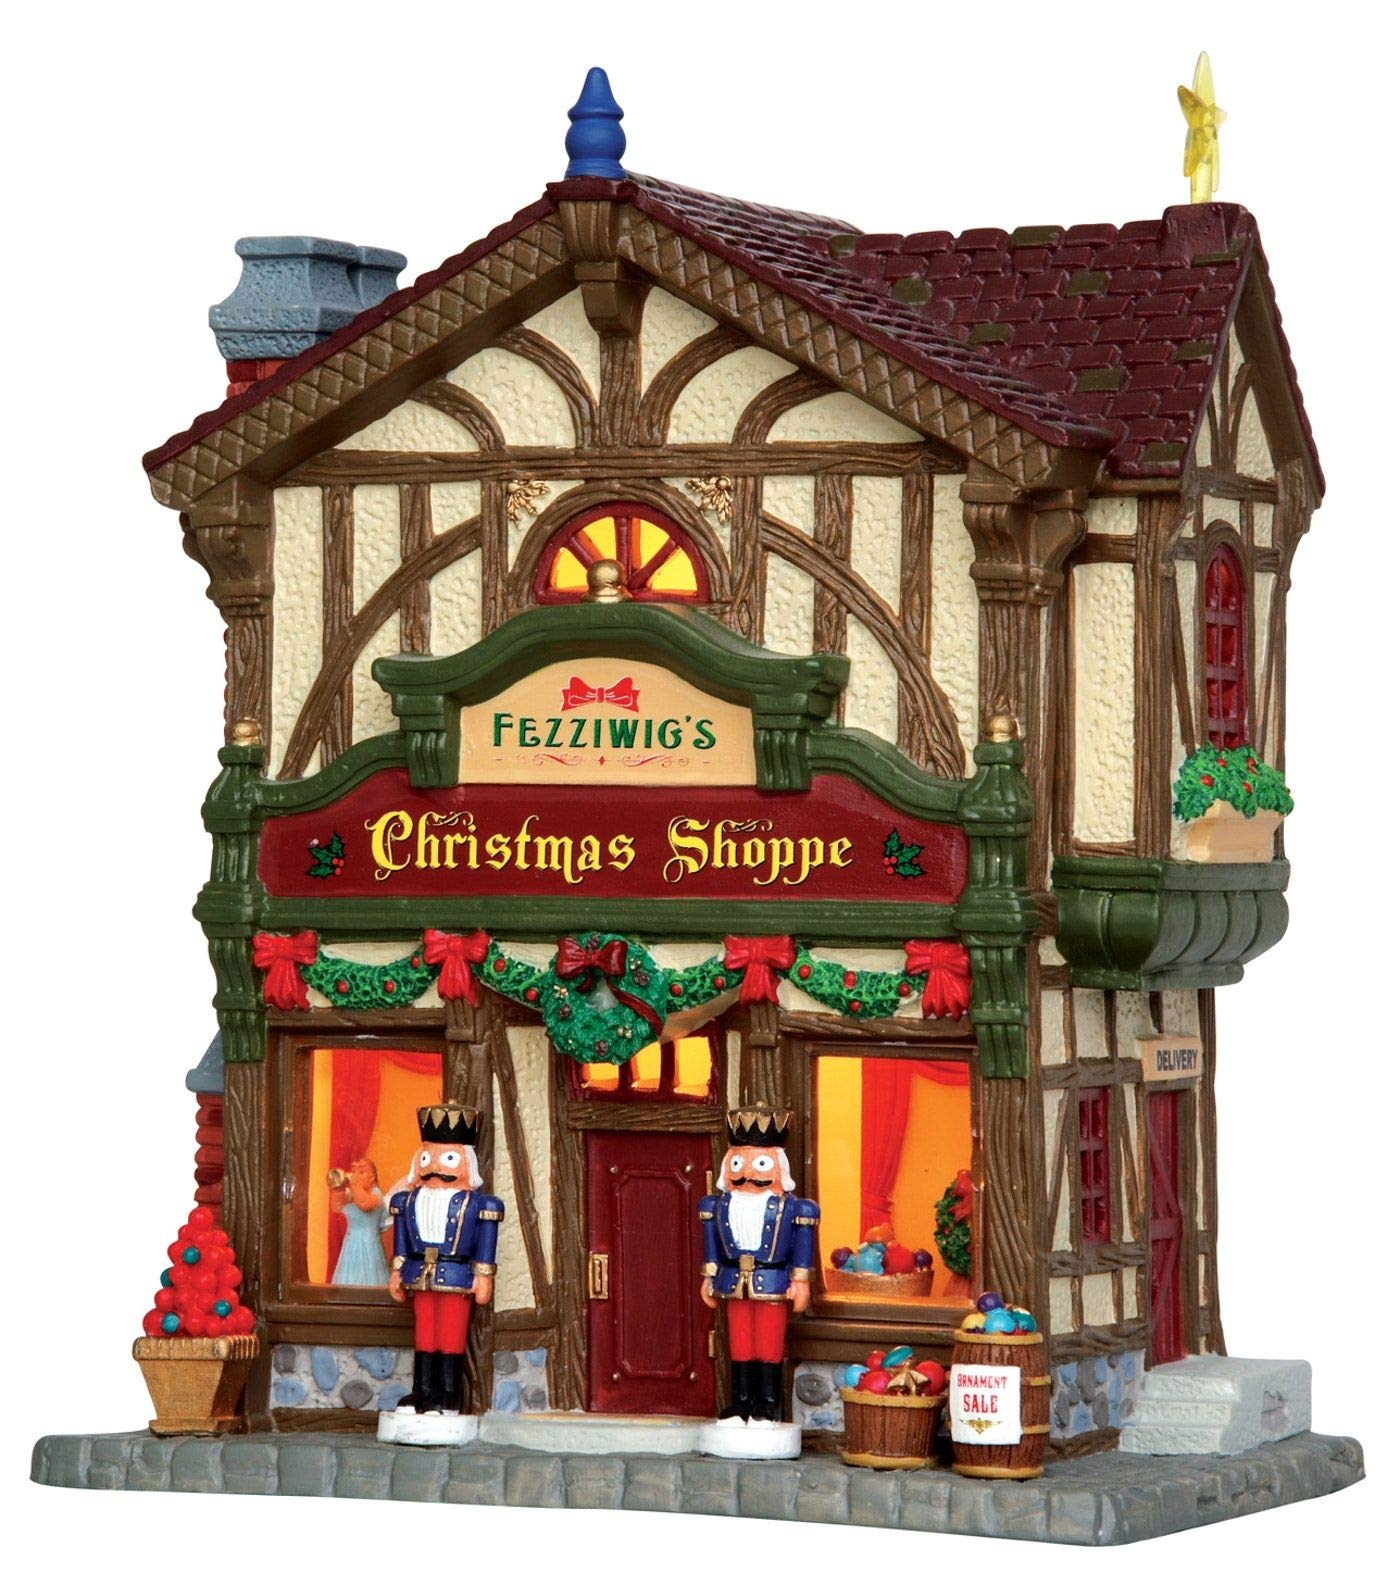 Lemax Village Collection Fezziwig's Christmas Shoppe #45742 by Lemax Village Collection